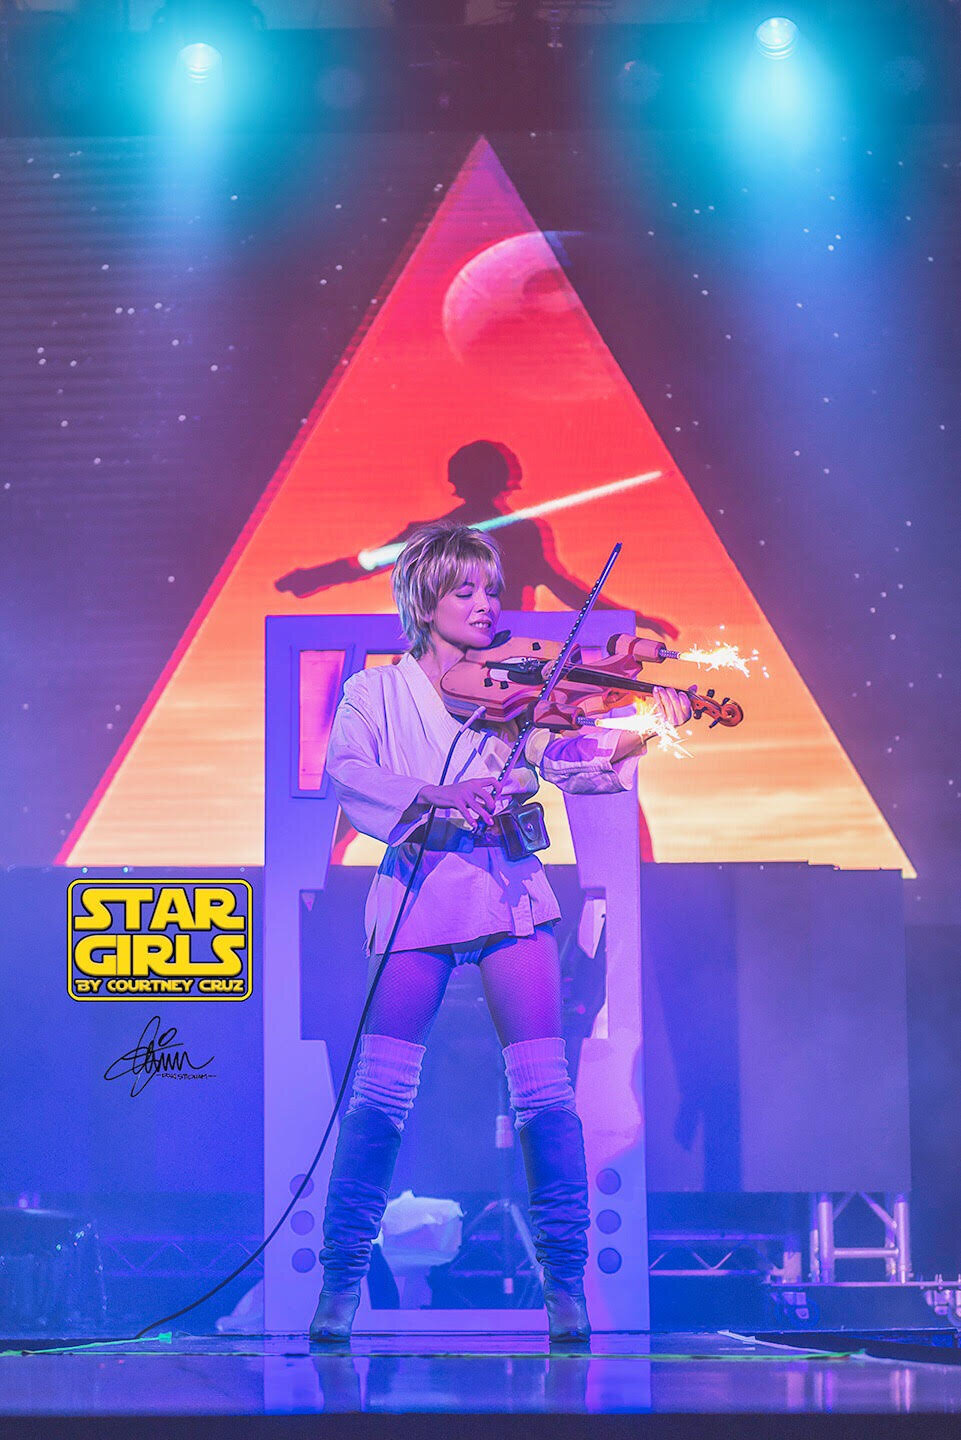 Diamondback plays the National Anthem on an electric violin with fireworks for jets at the Globe Theater in Downtown LA. (photo by Doug Stidham for Devil's Playground LA / violin by Carlos Flores / lighting design & projections by Jöel Huxtable